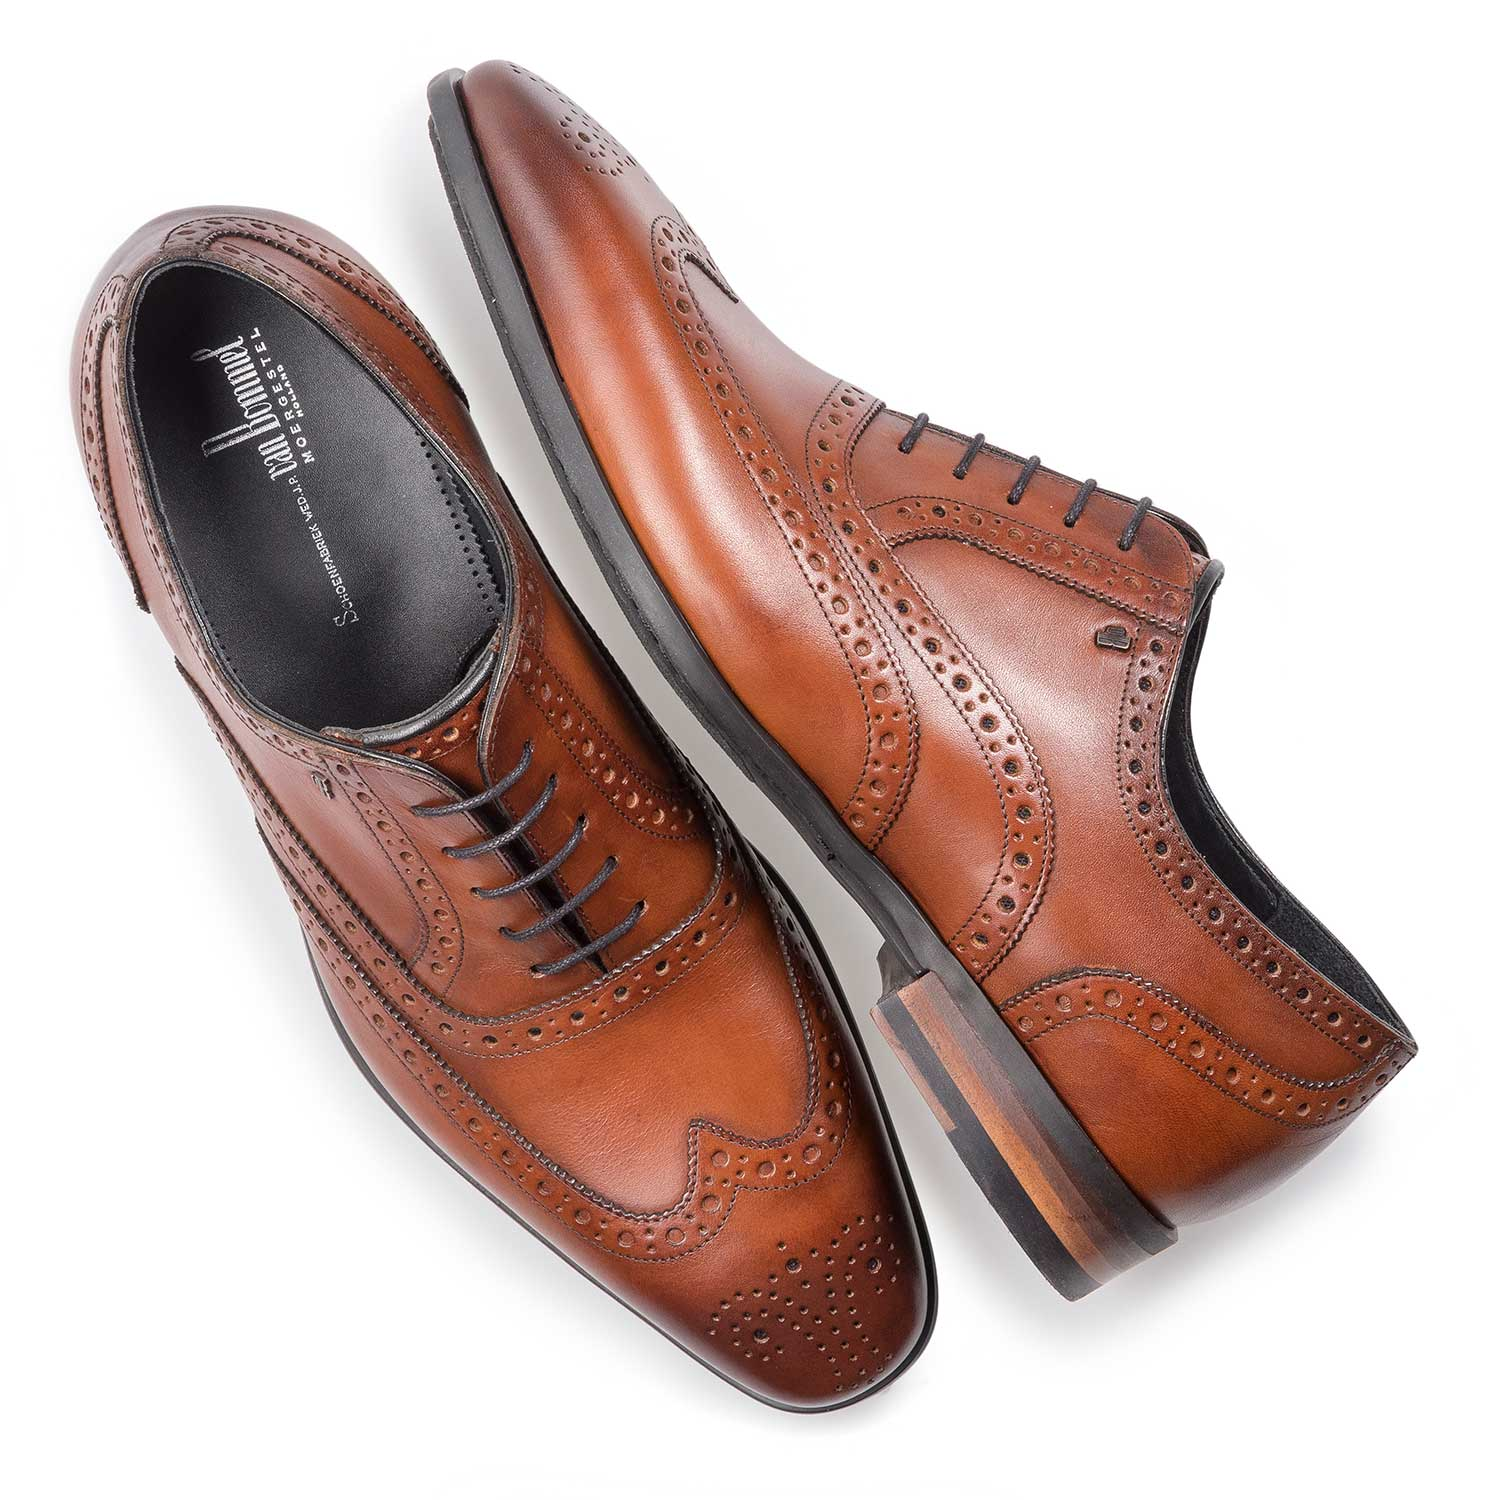 19105/04 - Cognac-coloured calf leather brogue